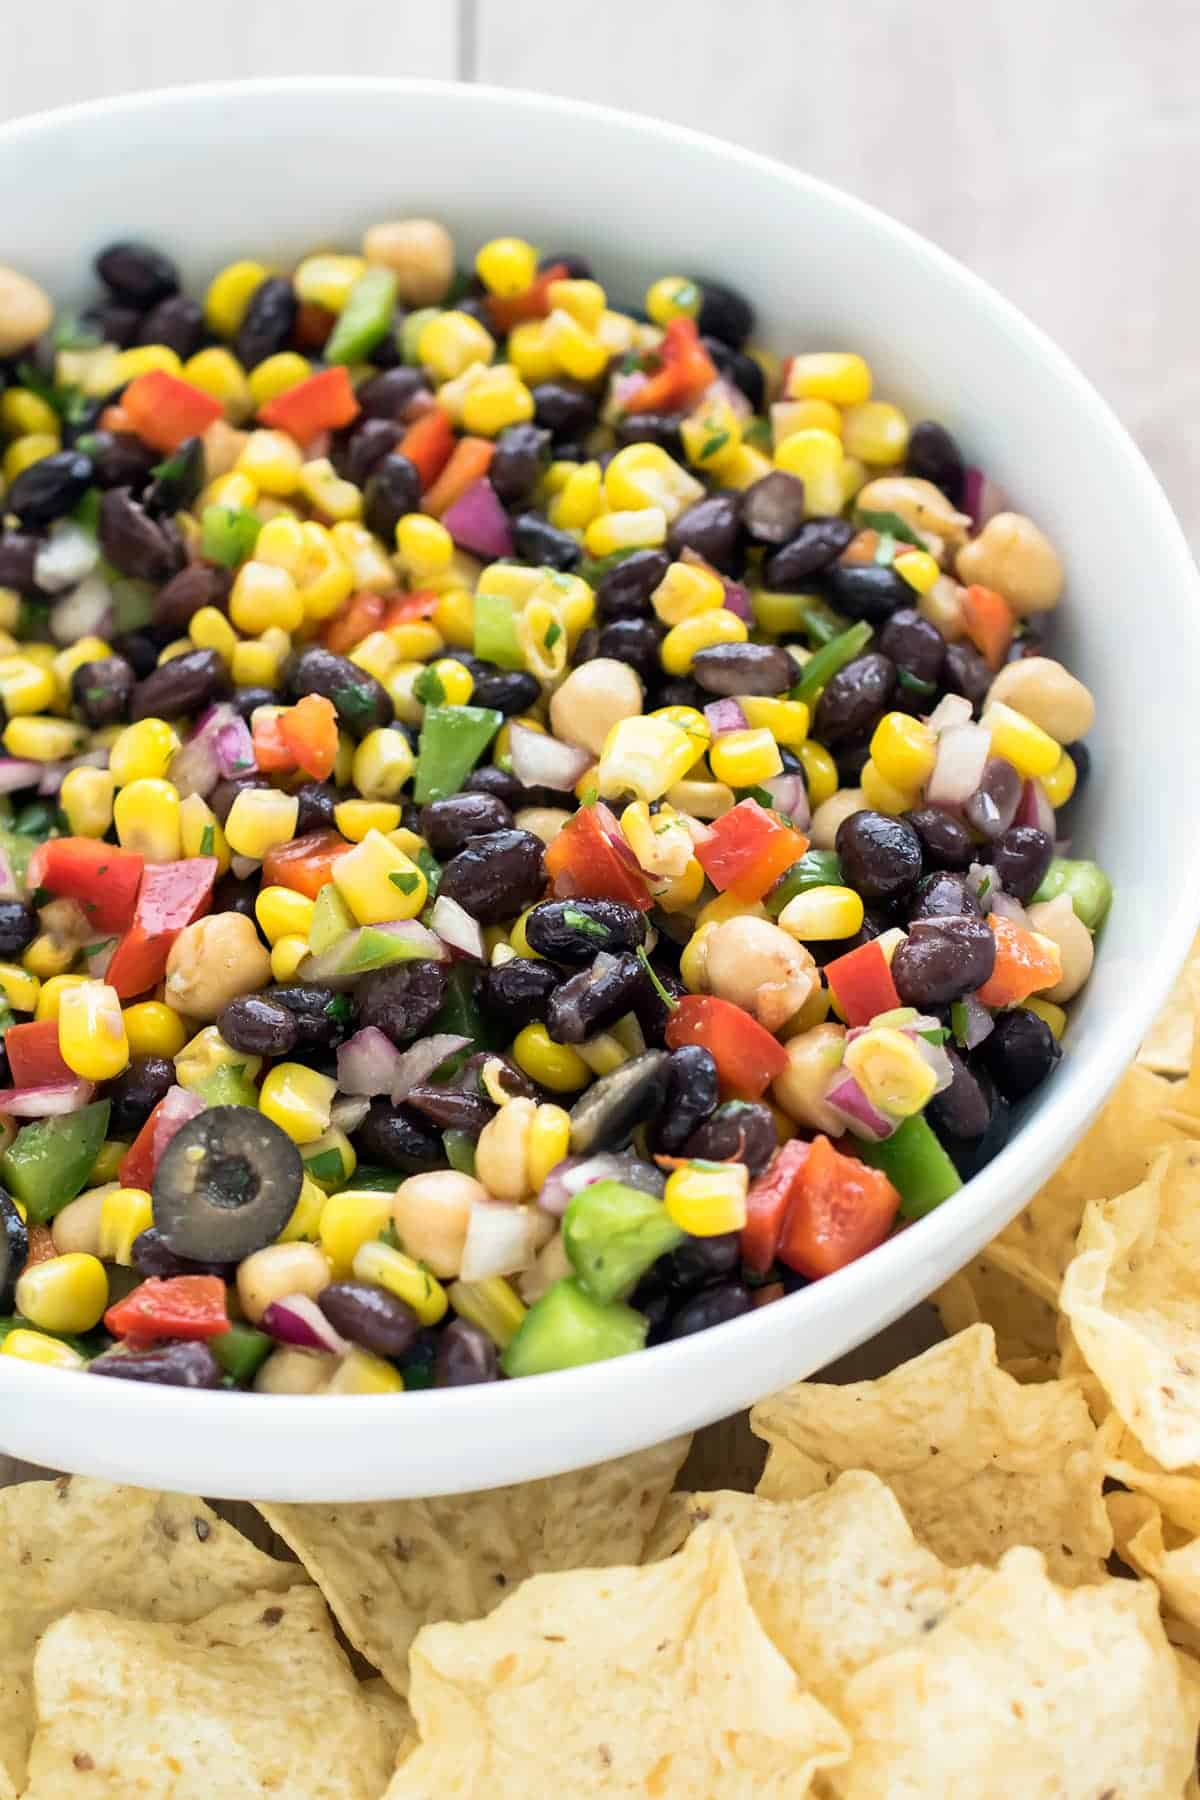 Heaping bowl of chopped salad with beans, corn, cilantro, fresh chopped veggies, olives, and vinaigrette.